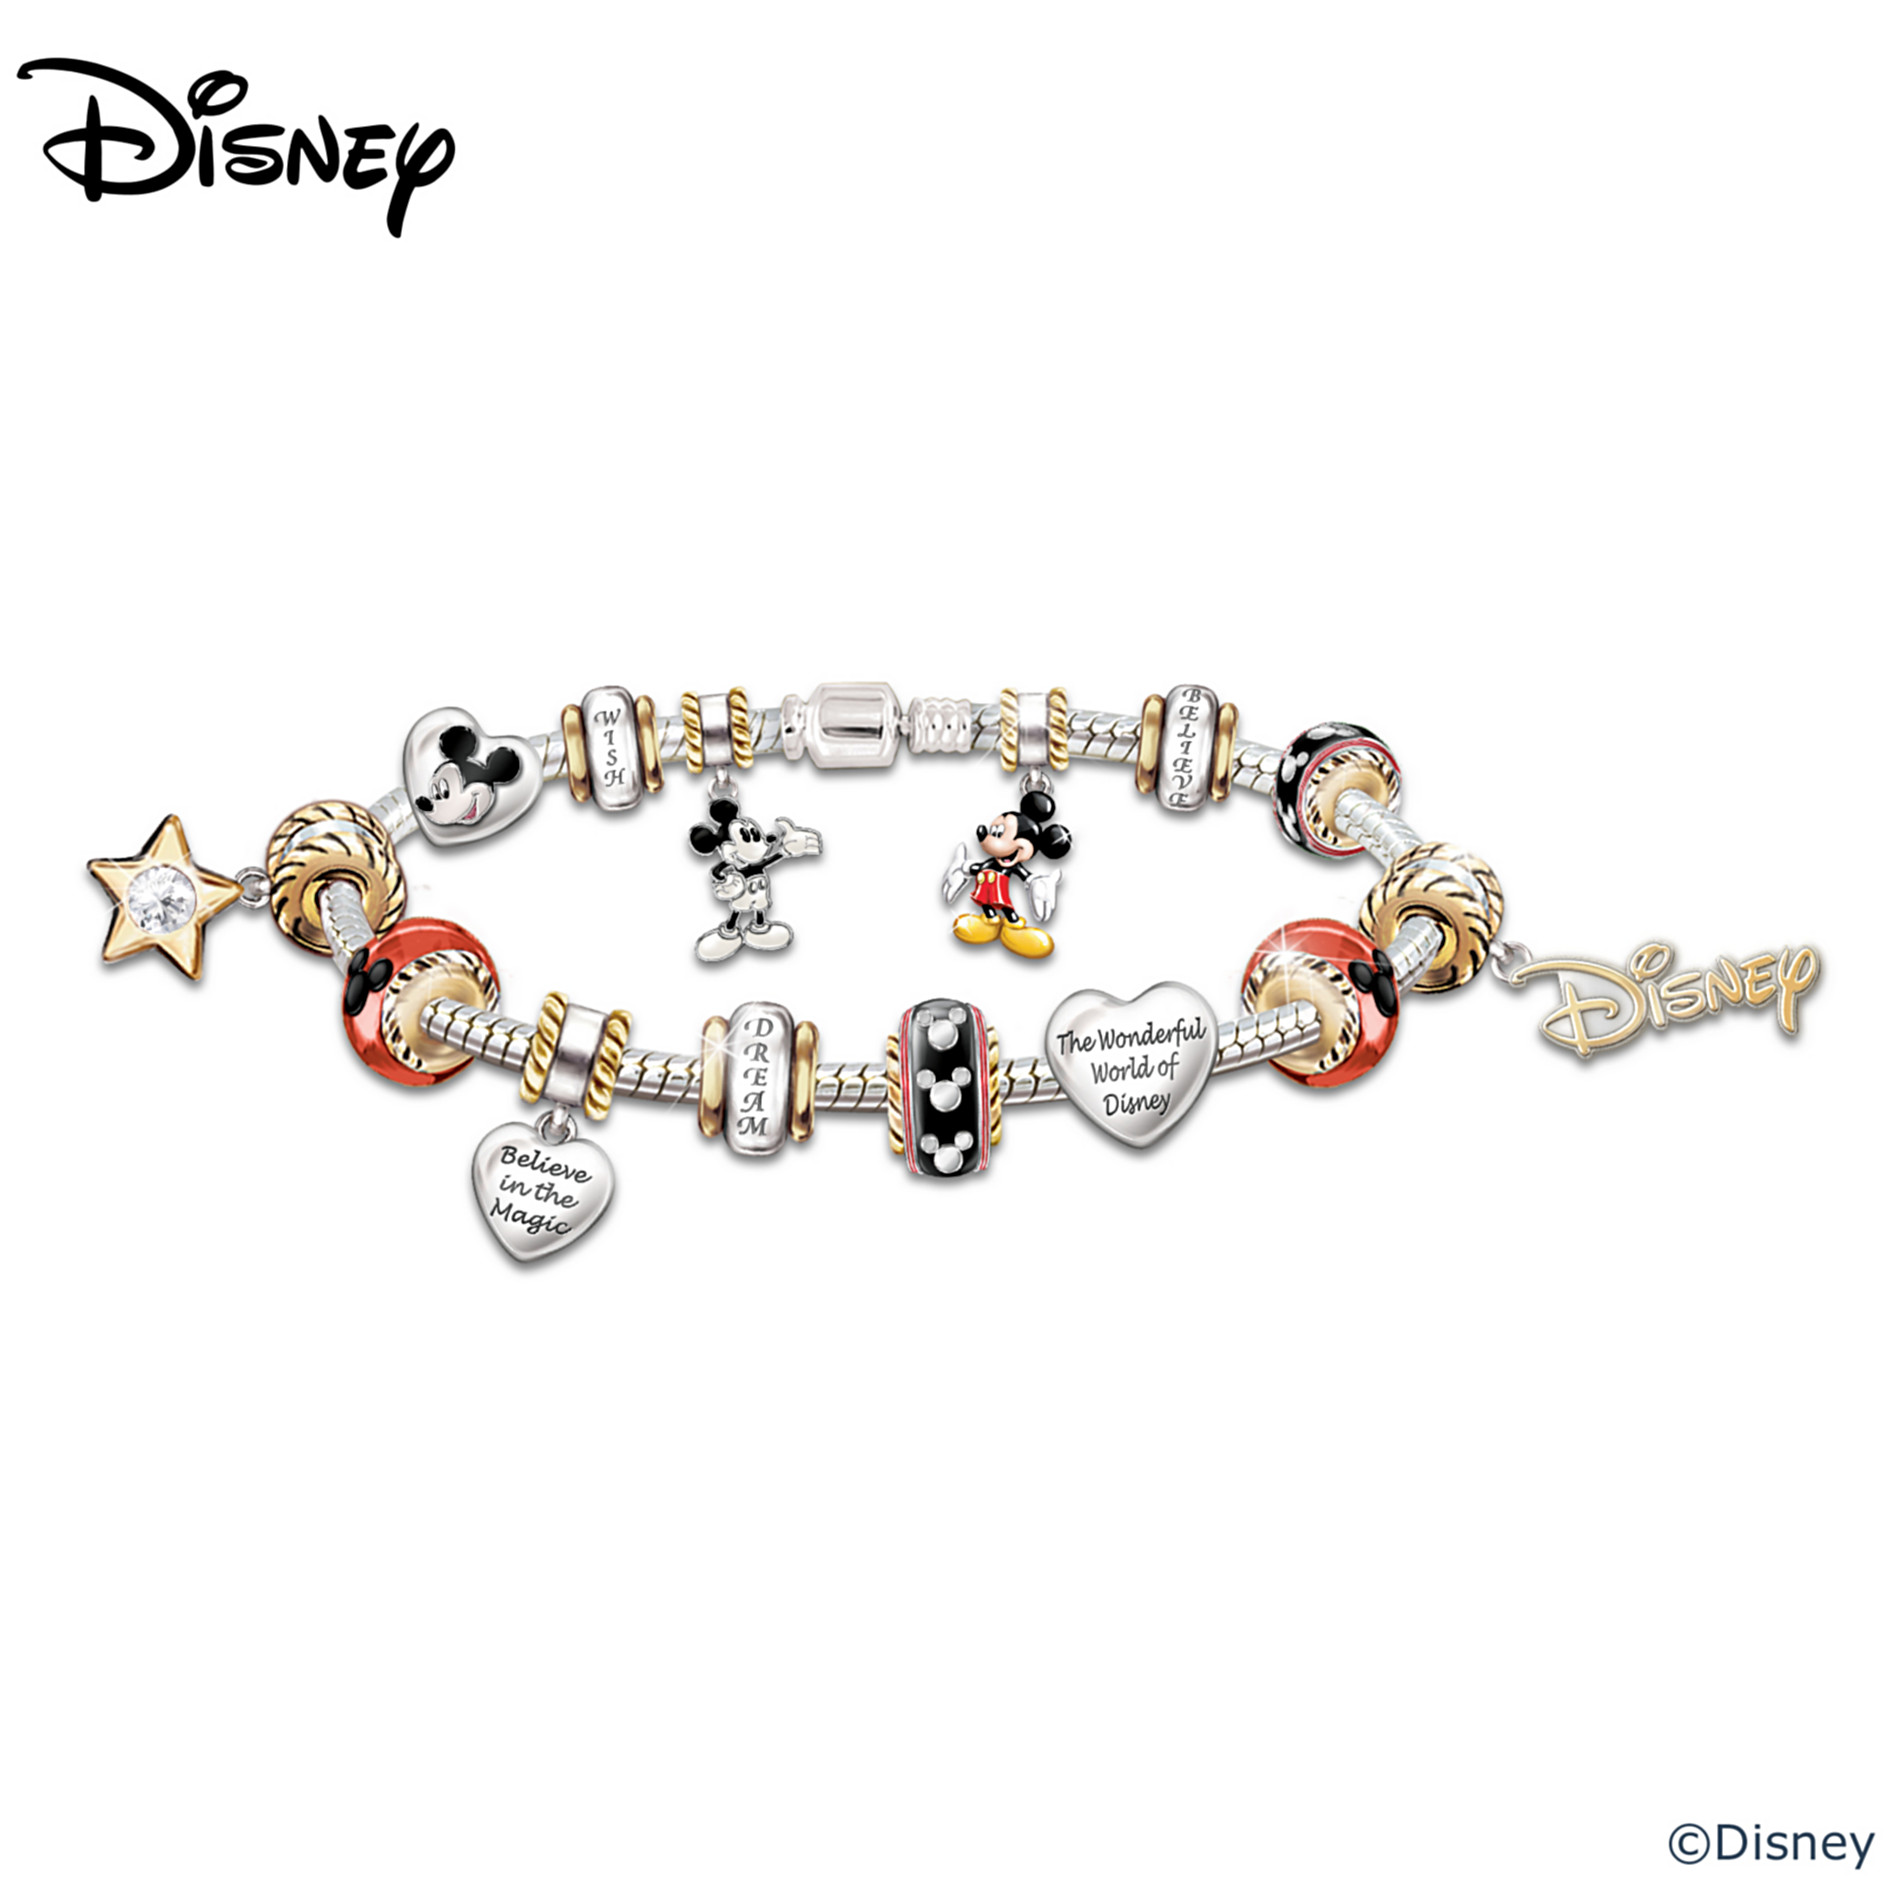 The Bradford Exchange Walt Disney 110th Anniversary Celebration: Mickey Mouse Charm Bracelet at Sears.com